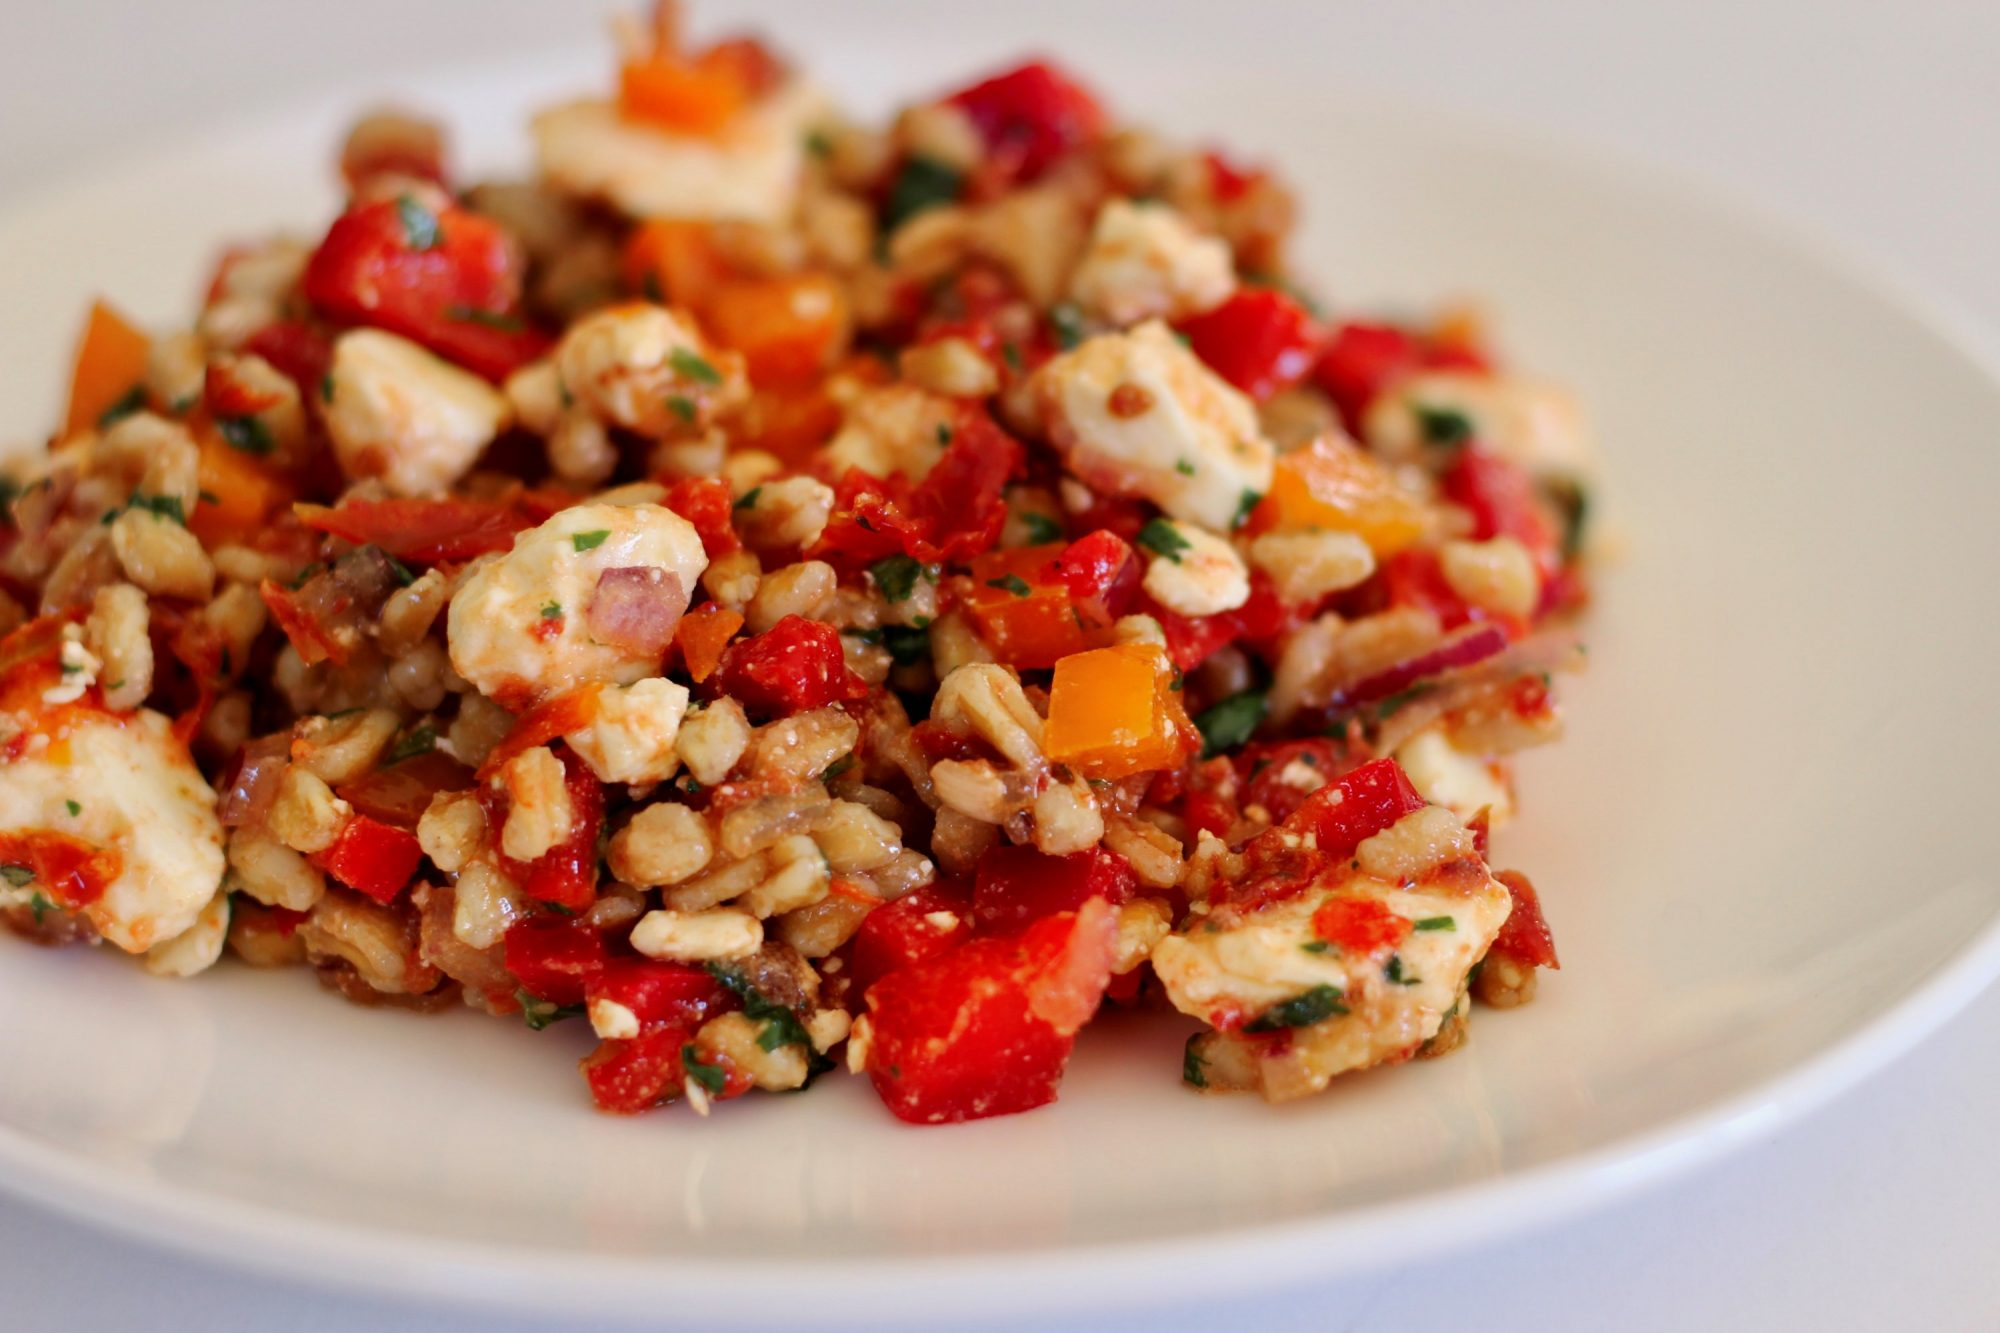 A colorful farro salad on a white plate